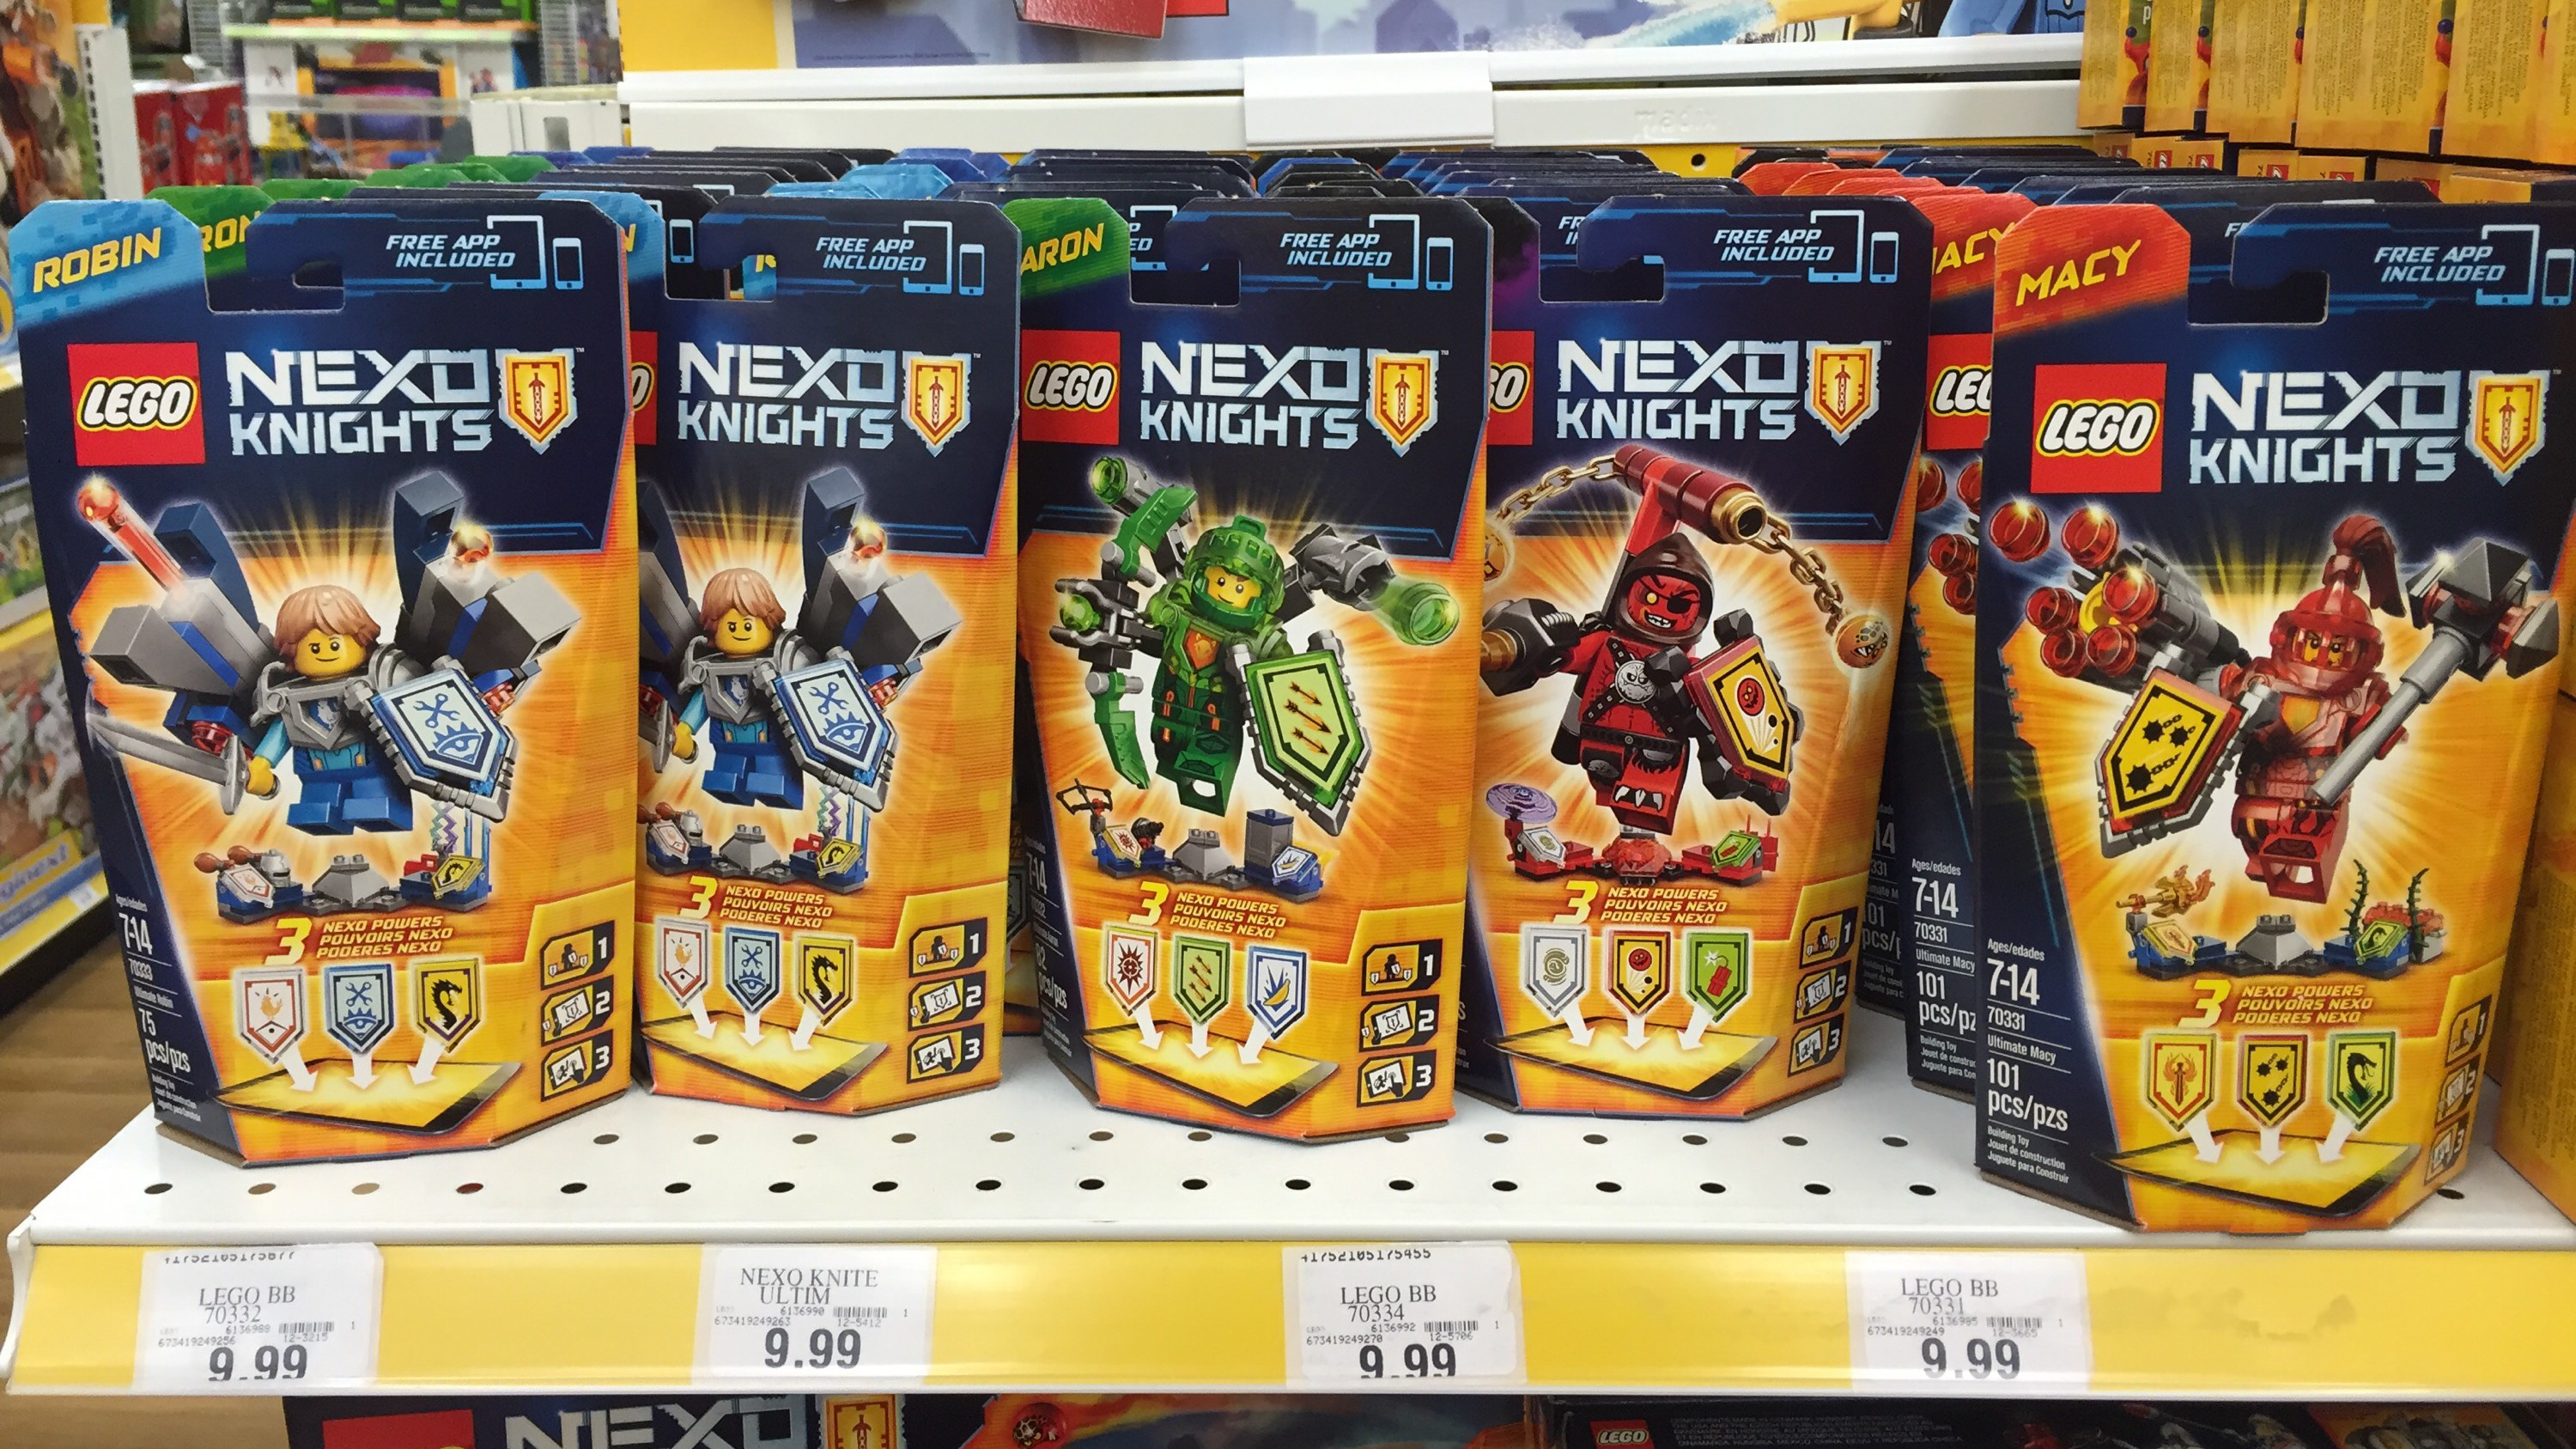 2016 LEGO Nexo Knights Sets Released